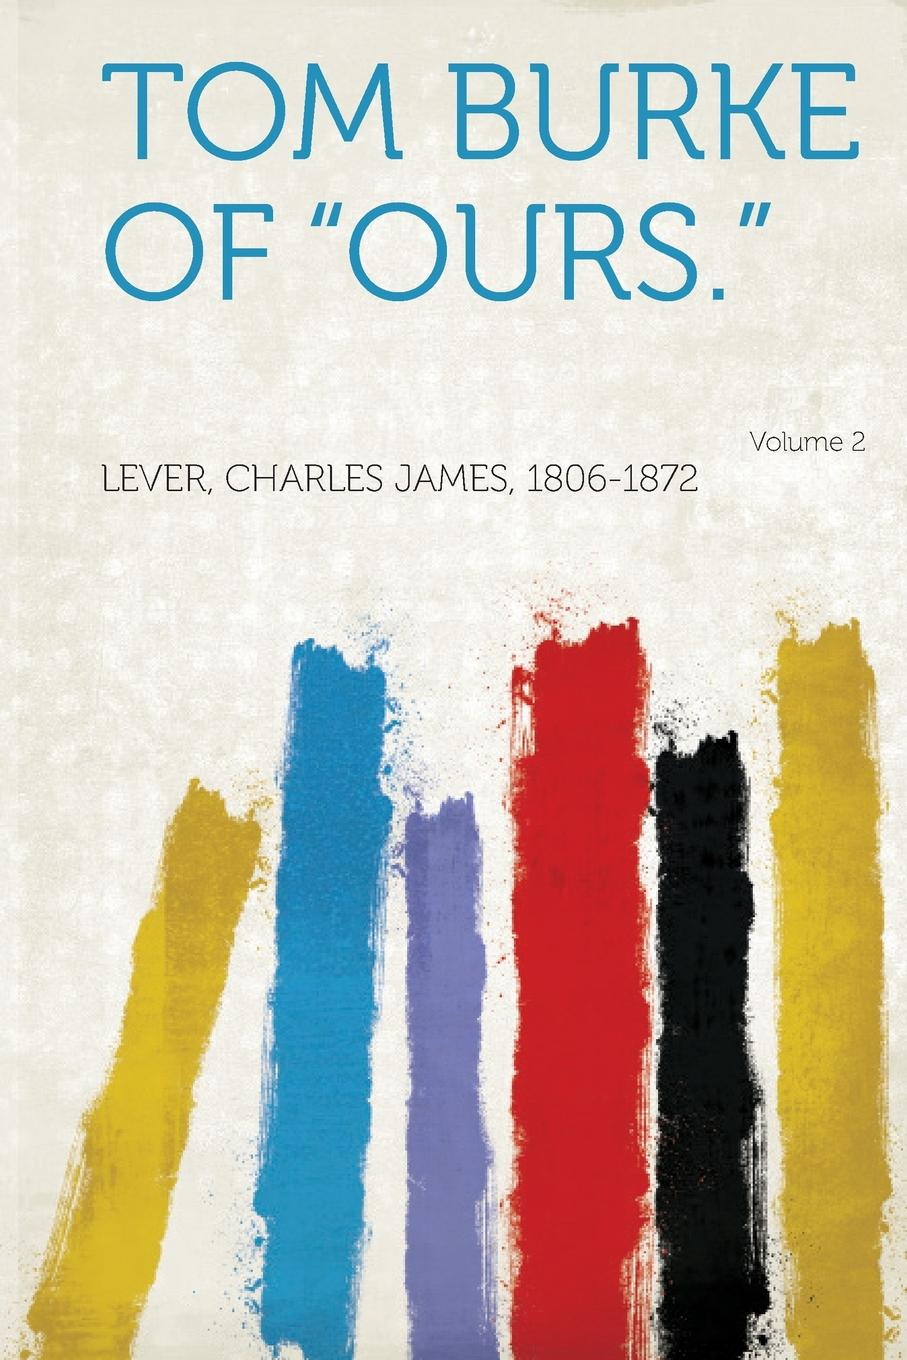 Lever Charles James 1806-1872 Tom Burke of Ours. Volume 2 these days are ours